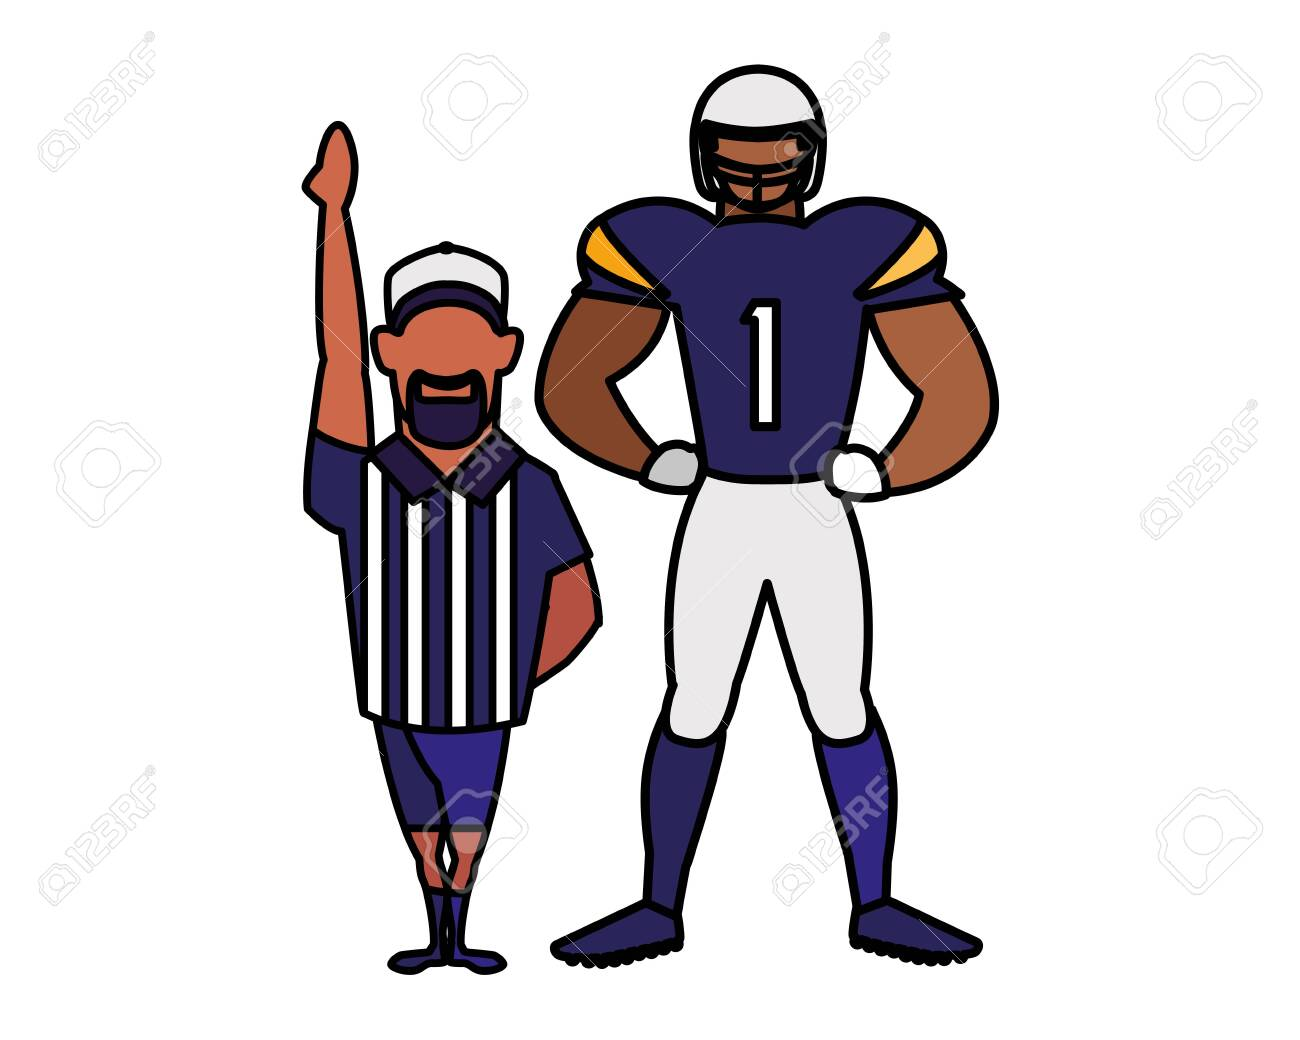 referee and player american football on white background vector illustration design - 142684034